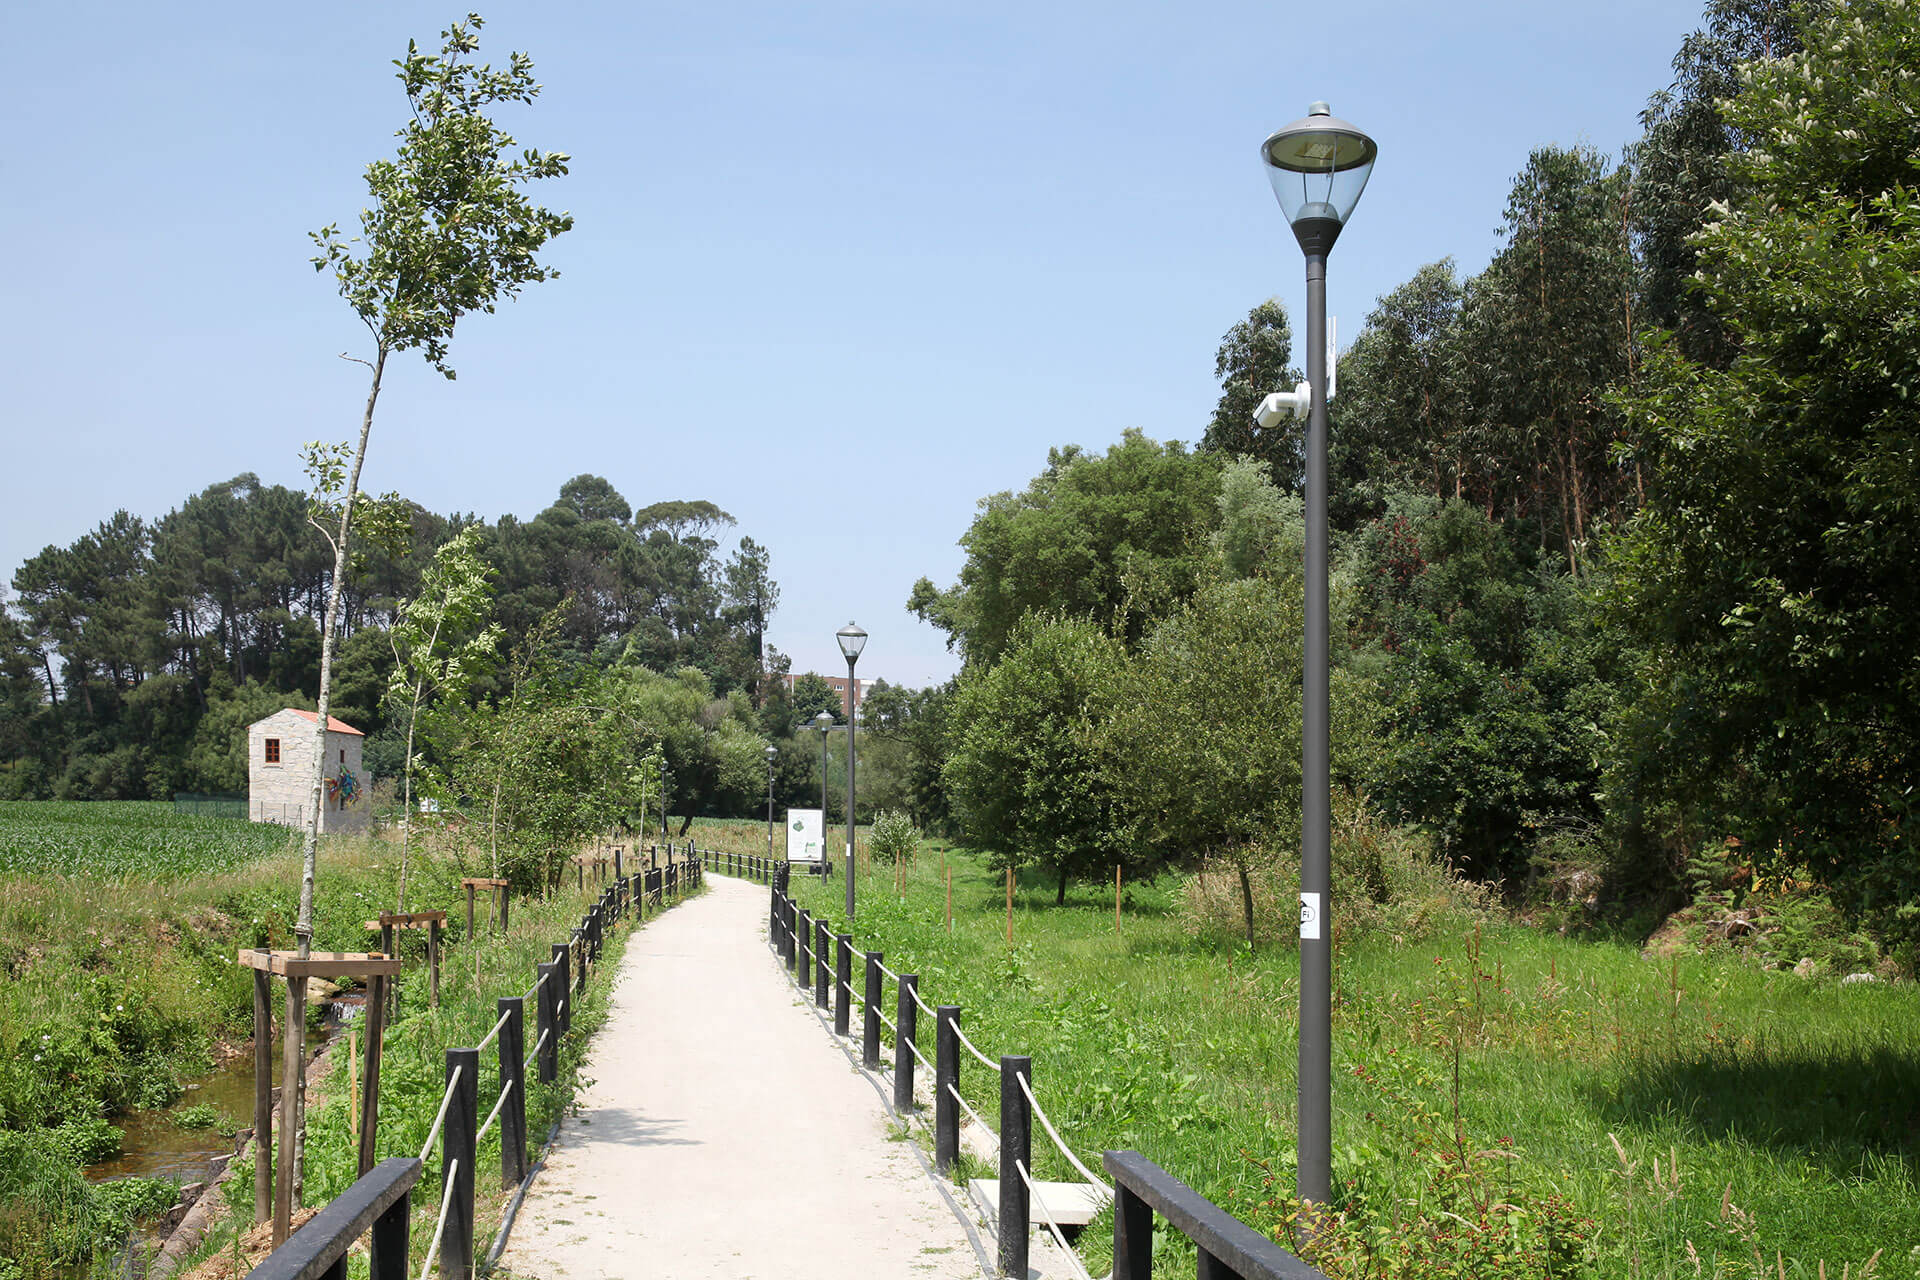 Kio LED ensures safety and comfort on this eco-trail in the most sustainable way